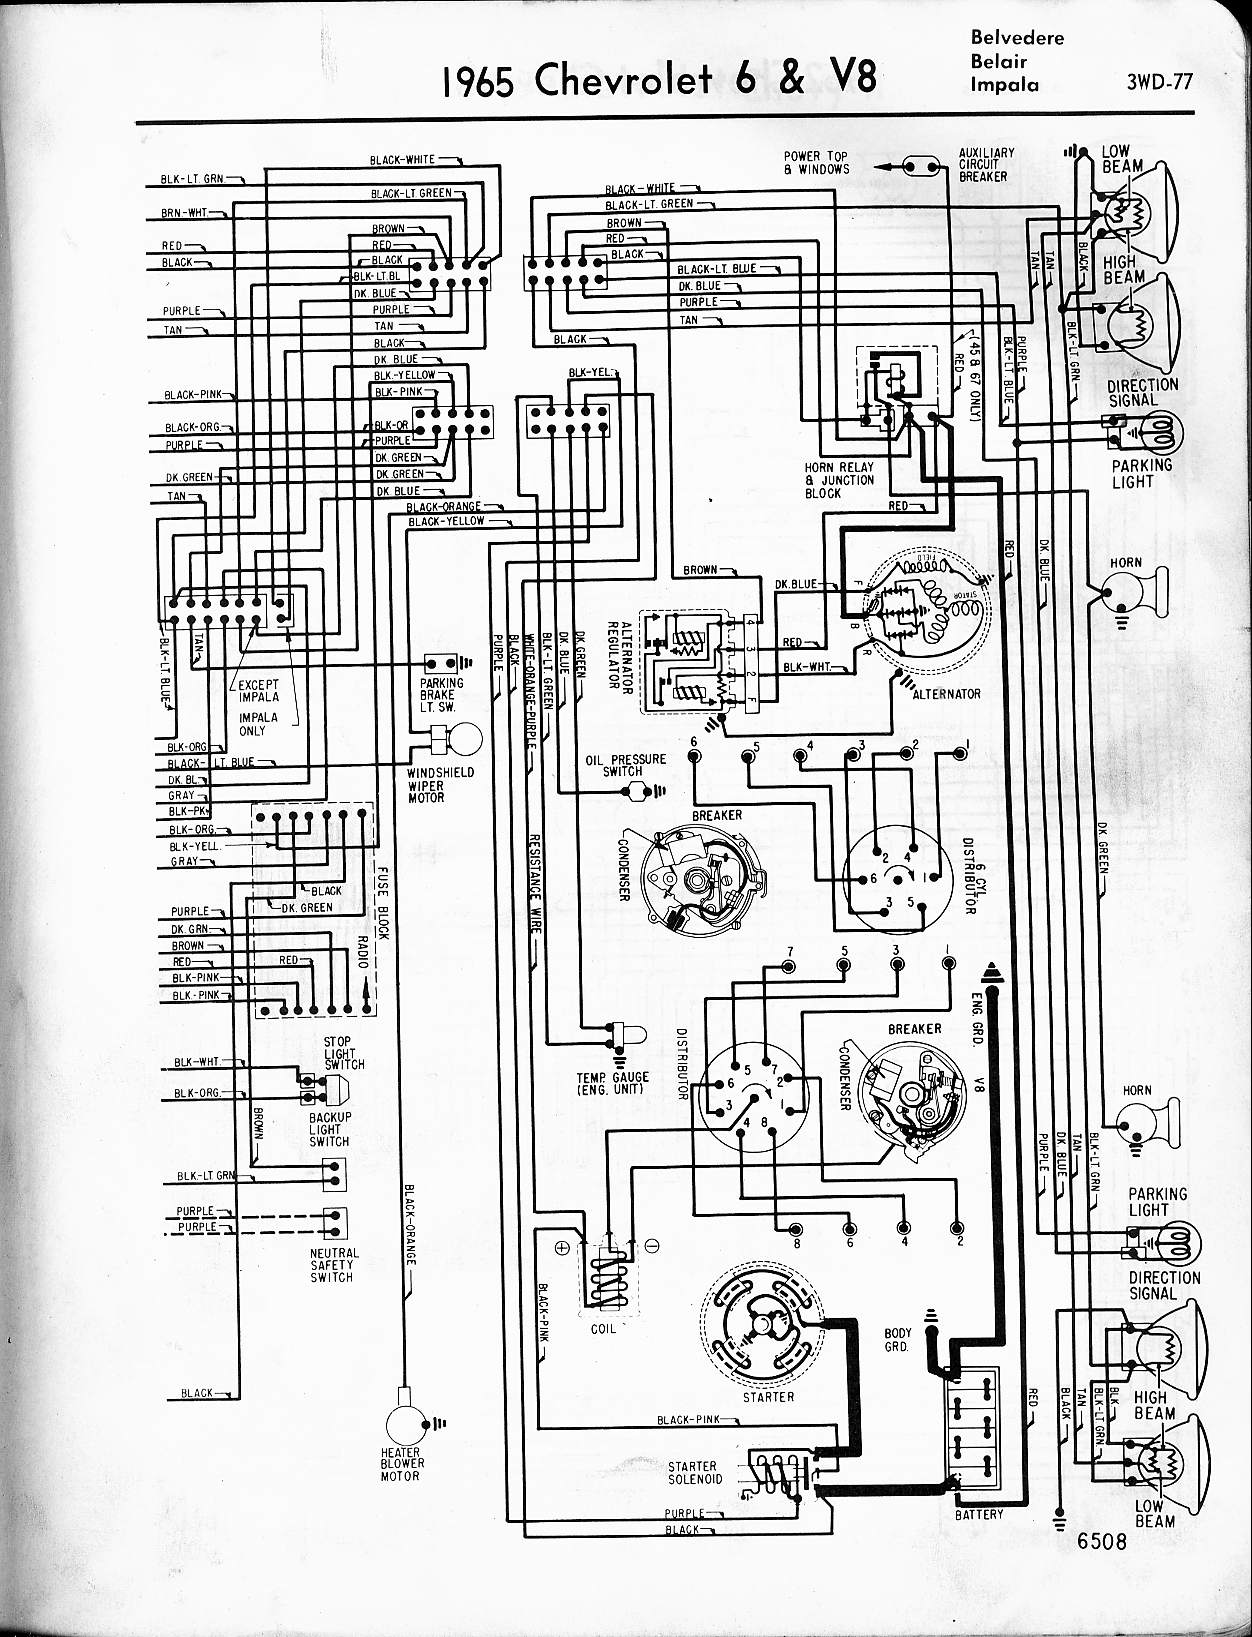 MWireChev65_3WD 077 1966 impala turn signal wiring diagram gto wire diagram \u2022 wiring 66 impala wiring diagram at virtualis.co